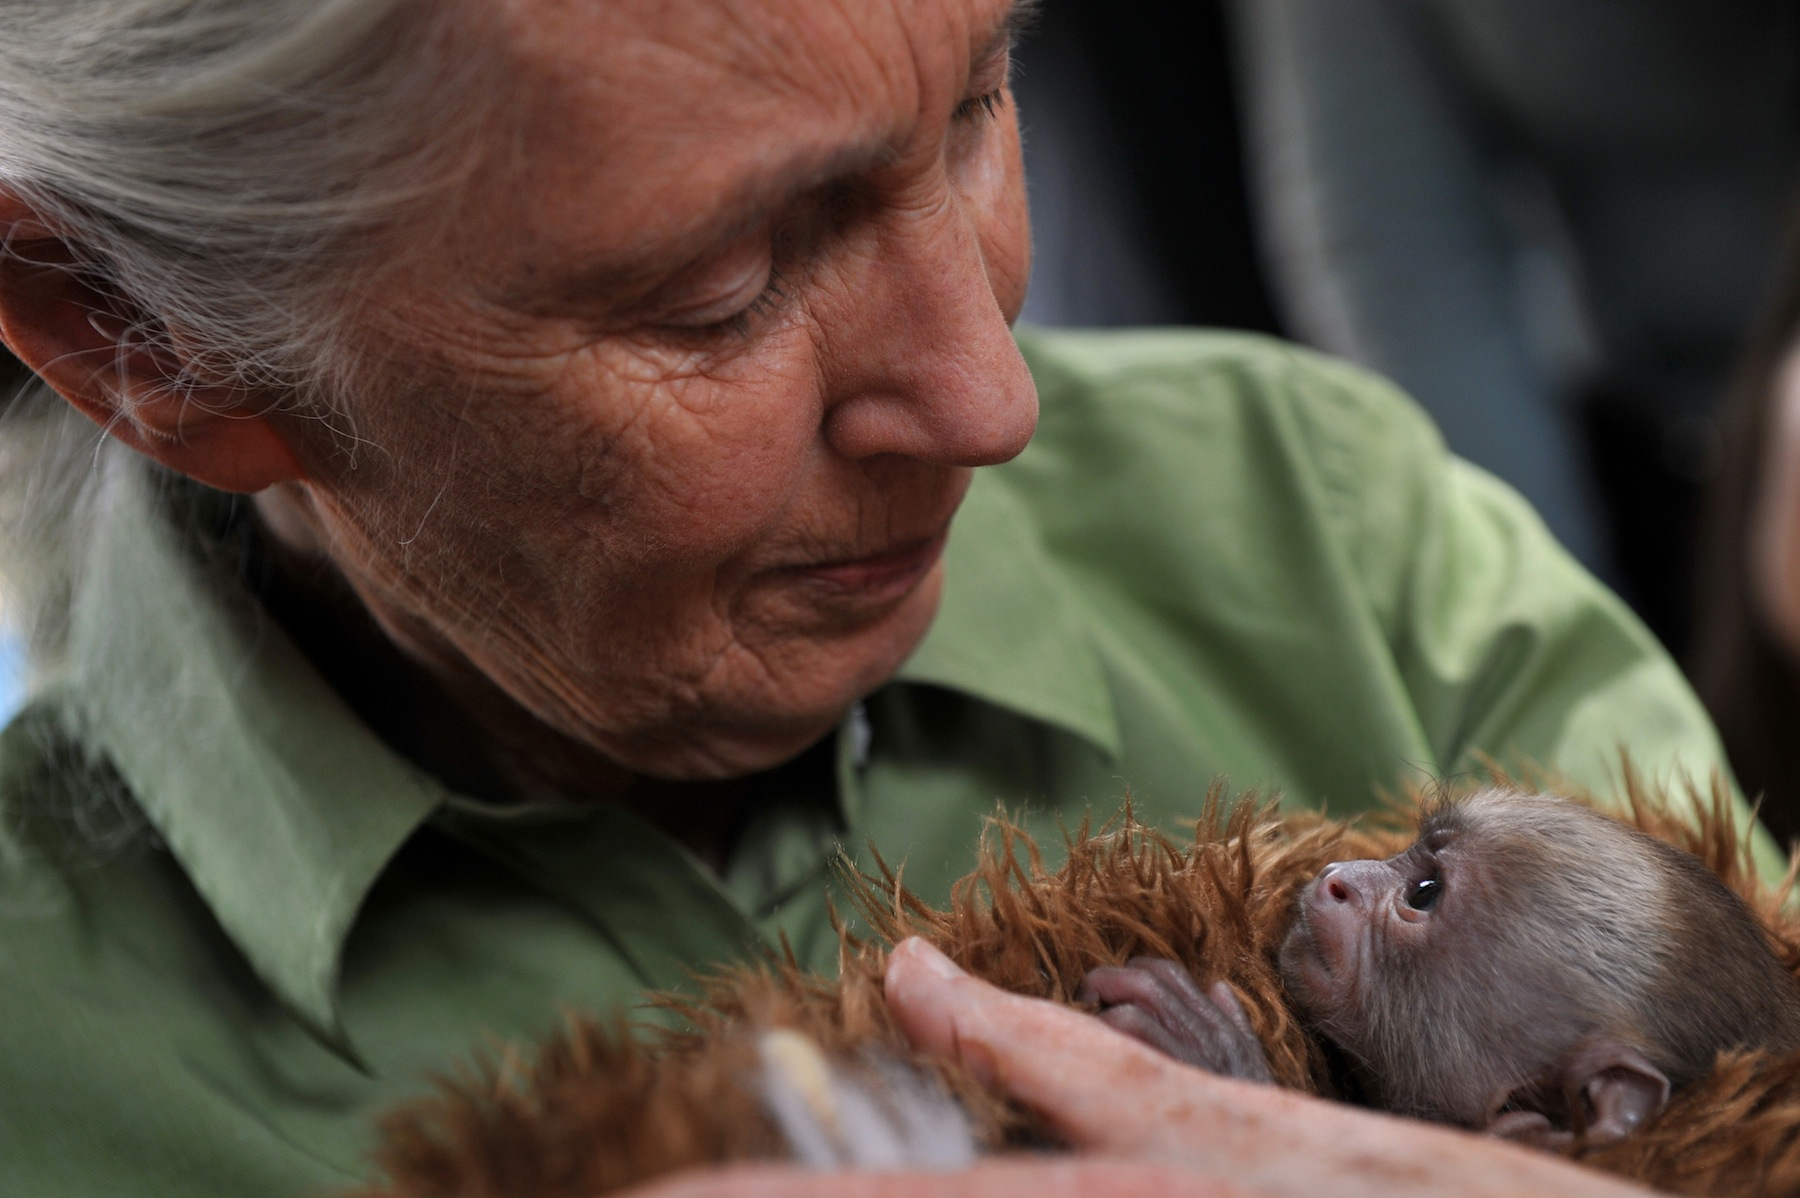 Jane Goodall holds a baby Cariblanco monkey (cebus capucinus) during a visit to the Rehabilitation Center and Primate Rescue, near Santiago, on Nov. 23, 2013, while visiting Chile.